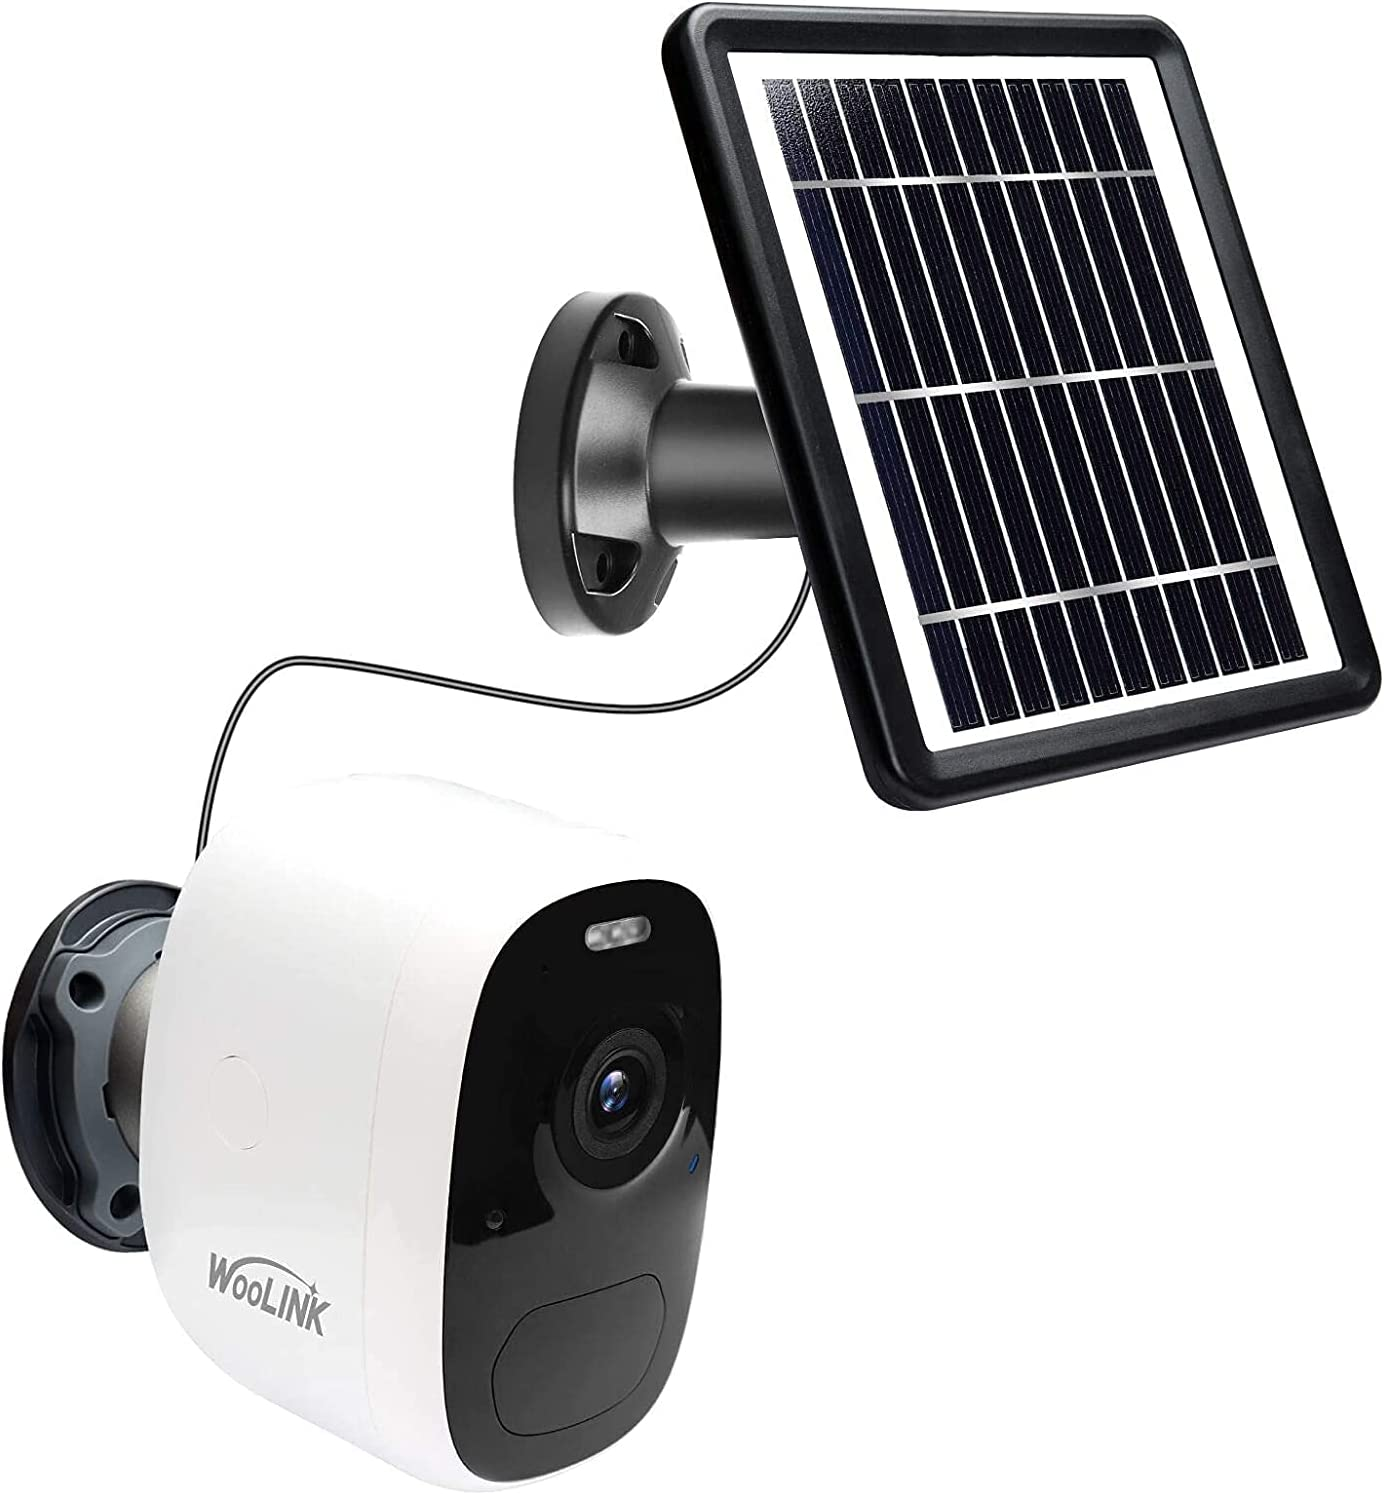 WooLink Solar Security Camera Outdoor Wireless WiFi Solar Powered Surveillance Cameras for Home System ,1080P,Night Vision, 2-Way Audio, IP66 (TF Card Included)